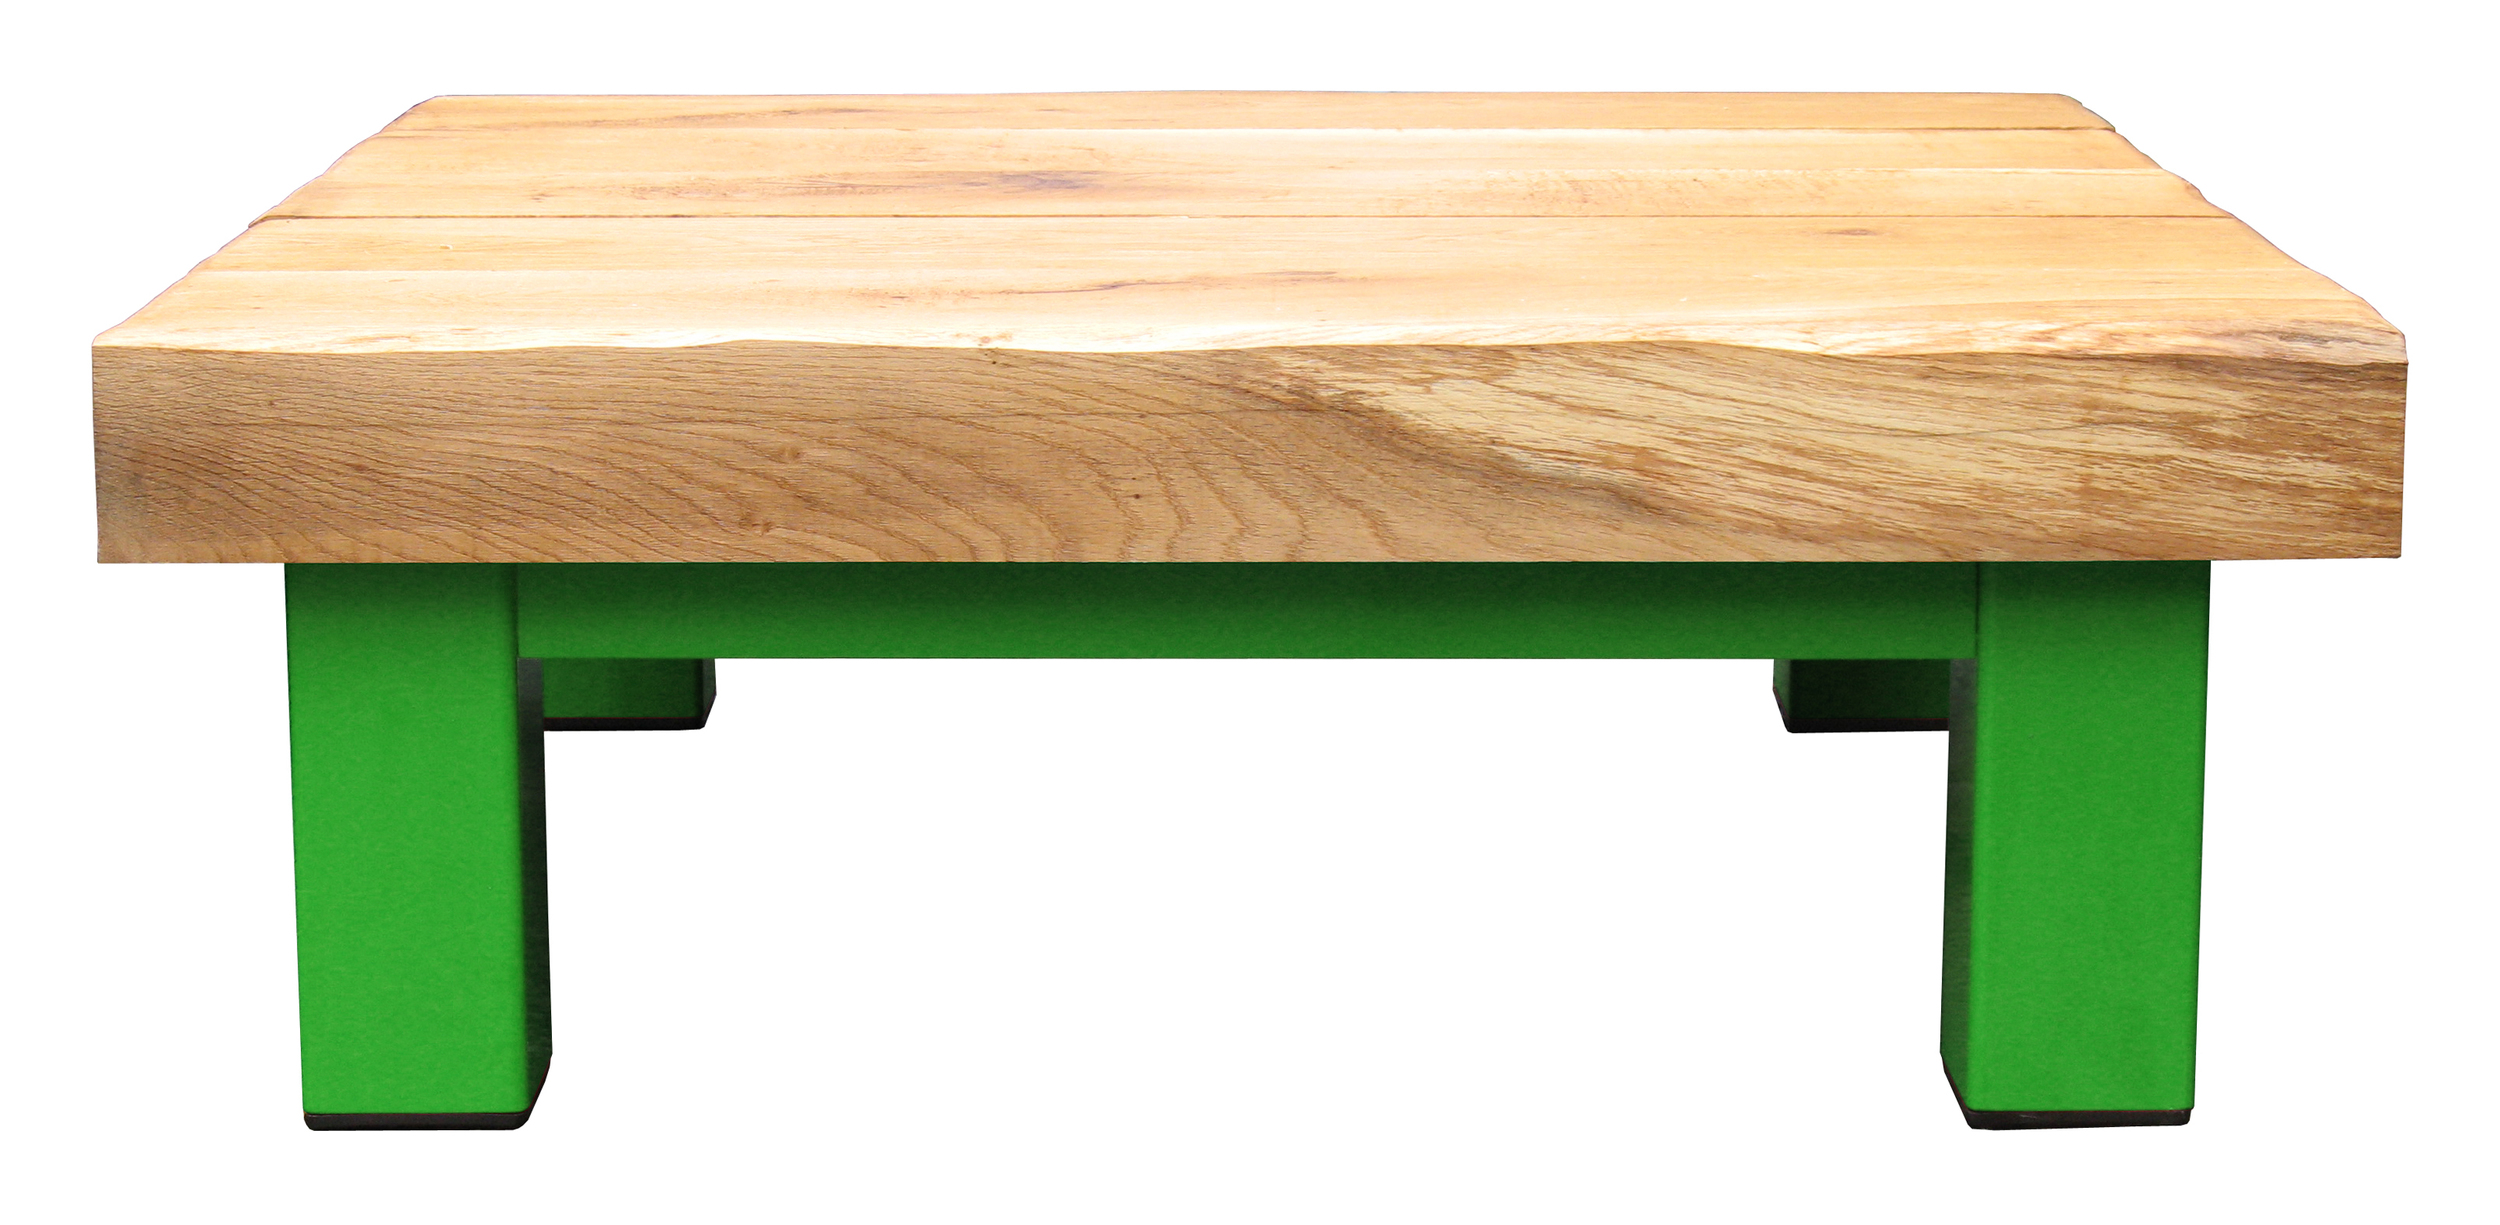 Oak & Iron Furniture Large Coffee Table - Light Green